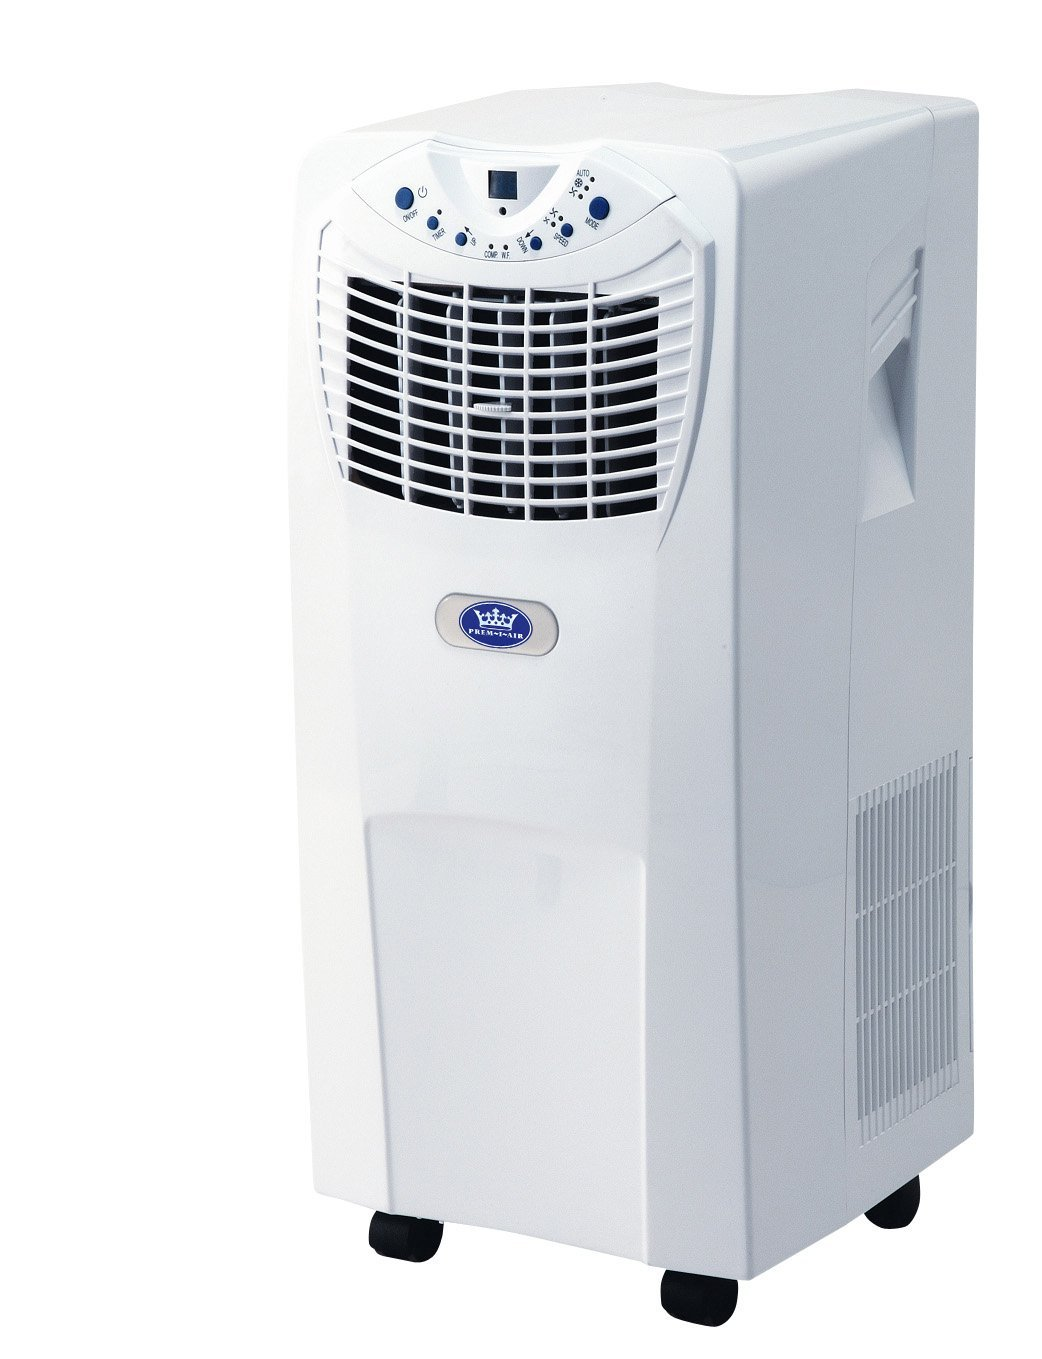 portable air conditioner Aircon247.com portable air conditioning  #35426E